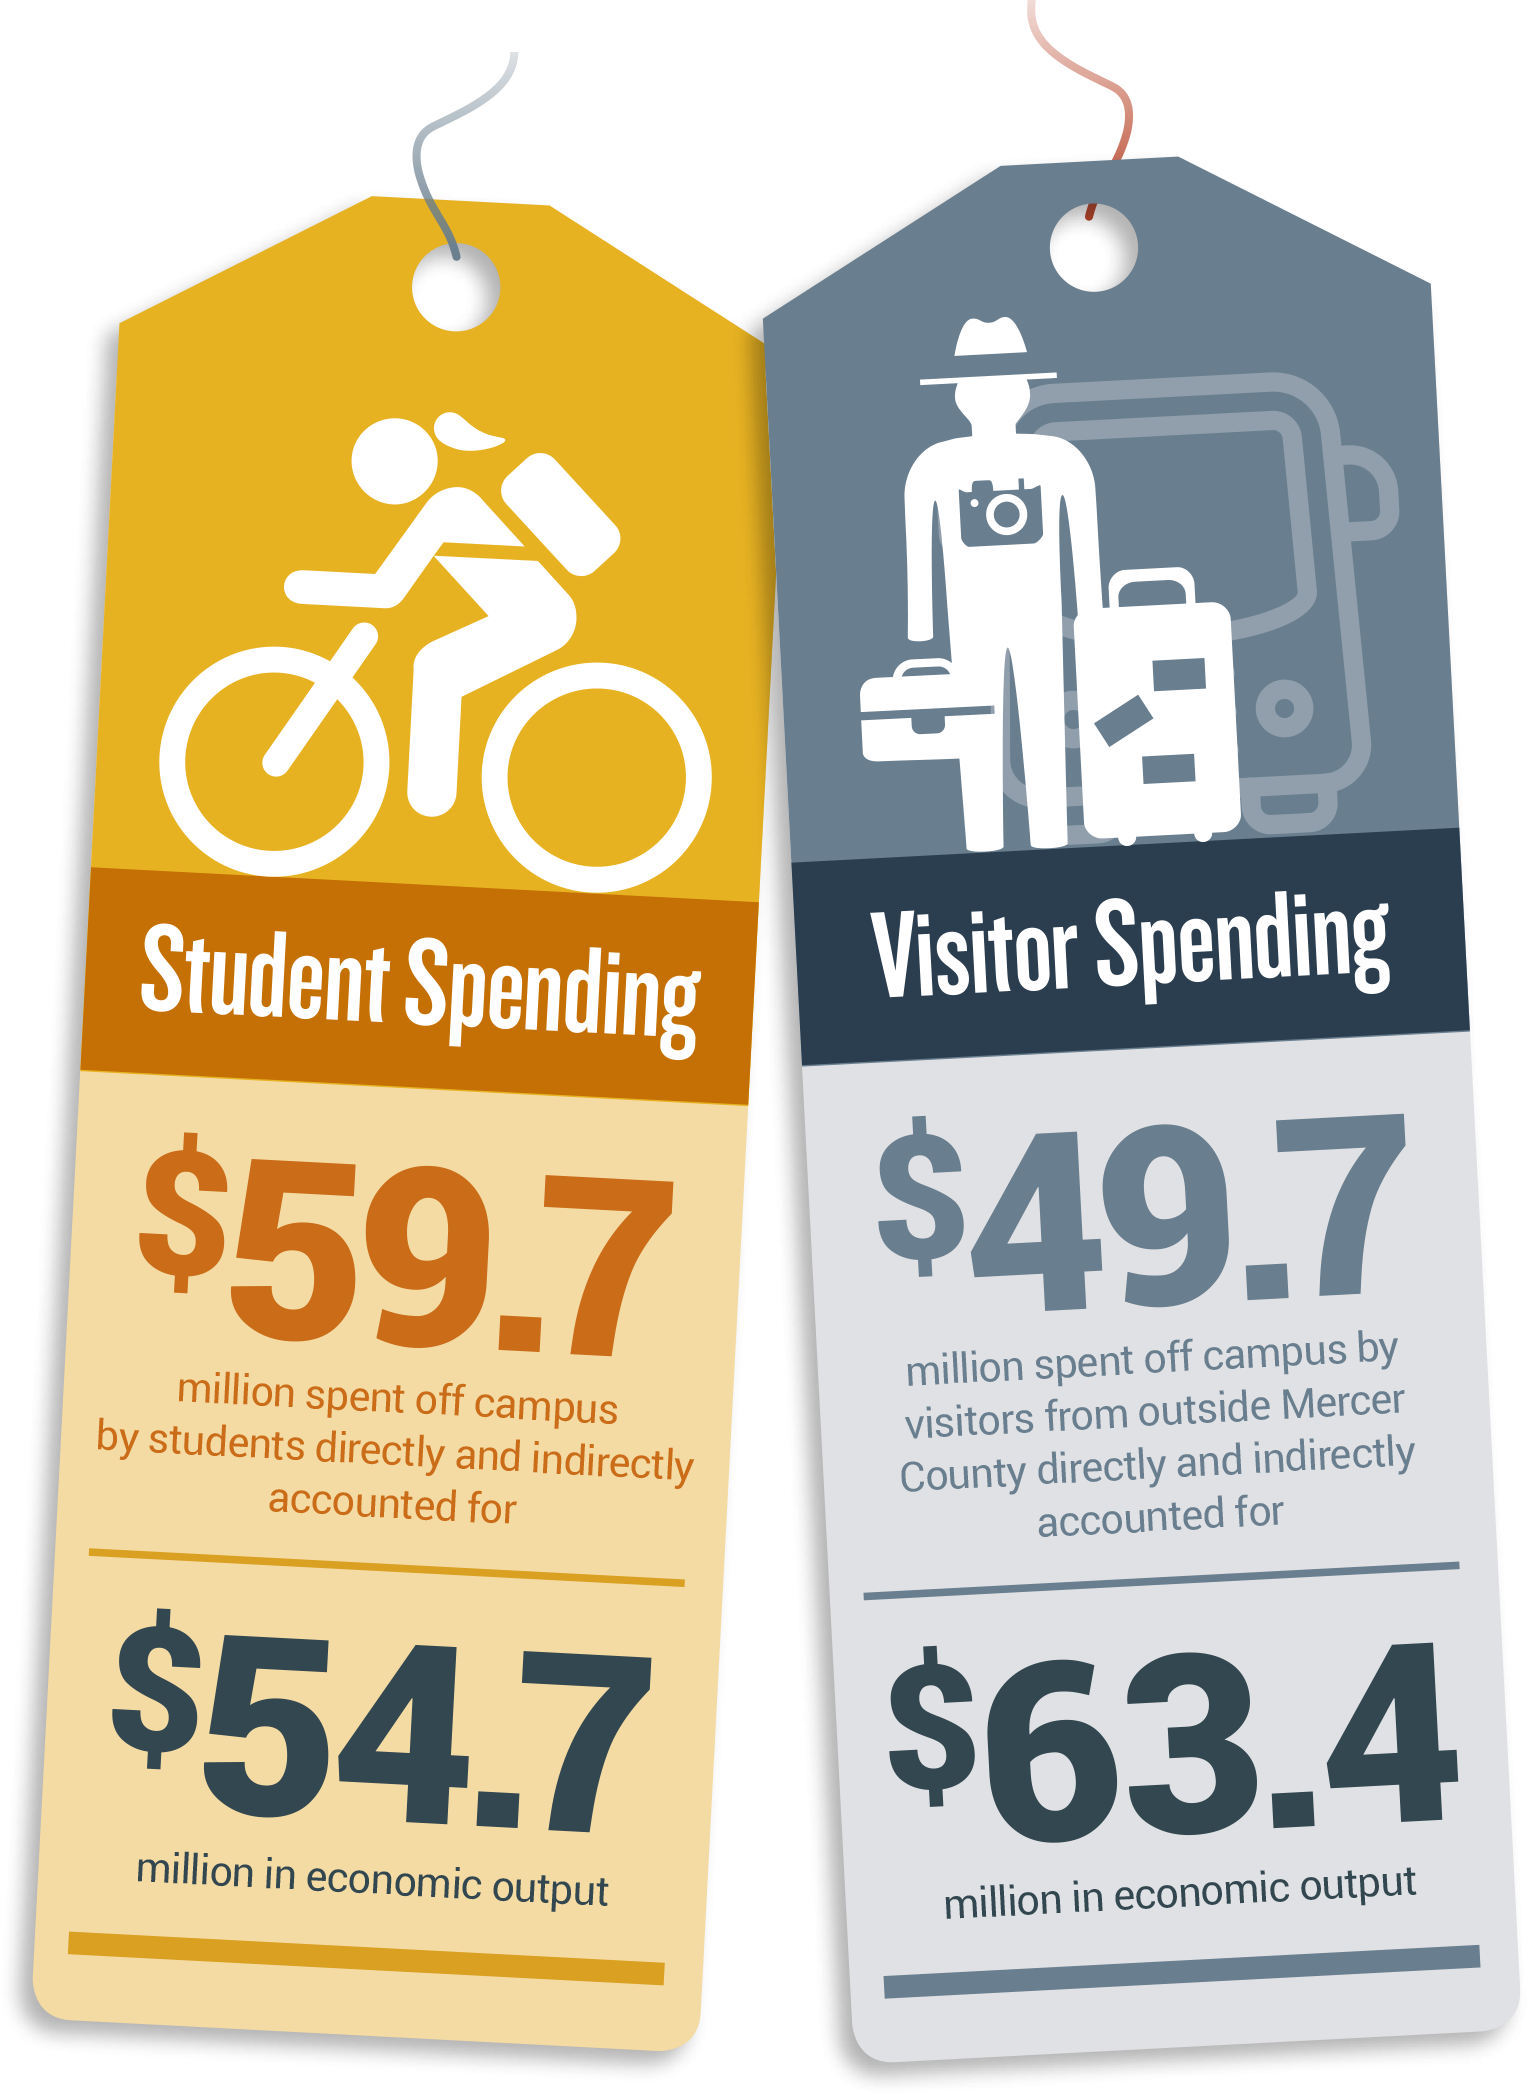 $59.7 million spent off campus by students directly and indirectly accounted for $54.7 million in economic output. $49.7 million spent off campus by visitors from outside Mercer County directly and indirectly accounted for $63.4 million in economic output